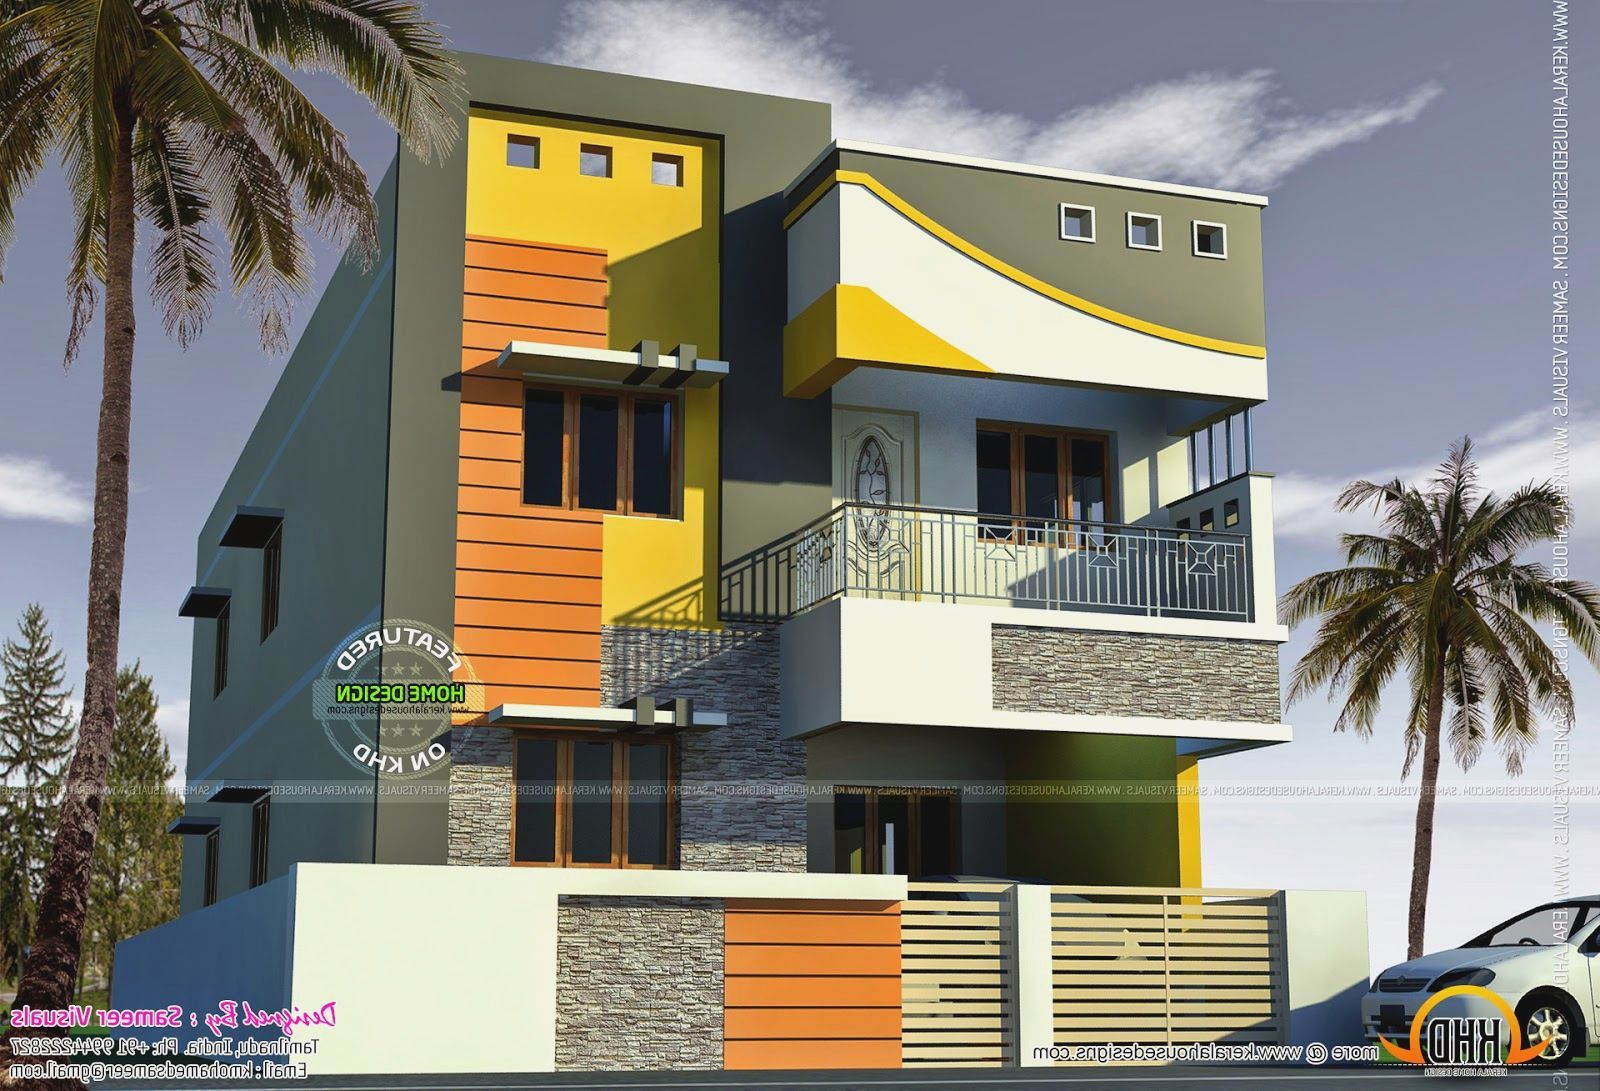 Tamilnadu house models more picture tamilnadu house models for Single floor house designs tamilnadu